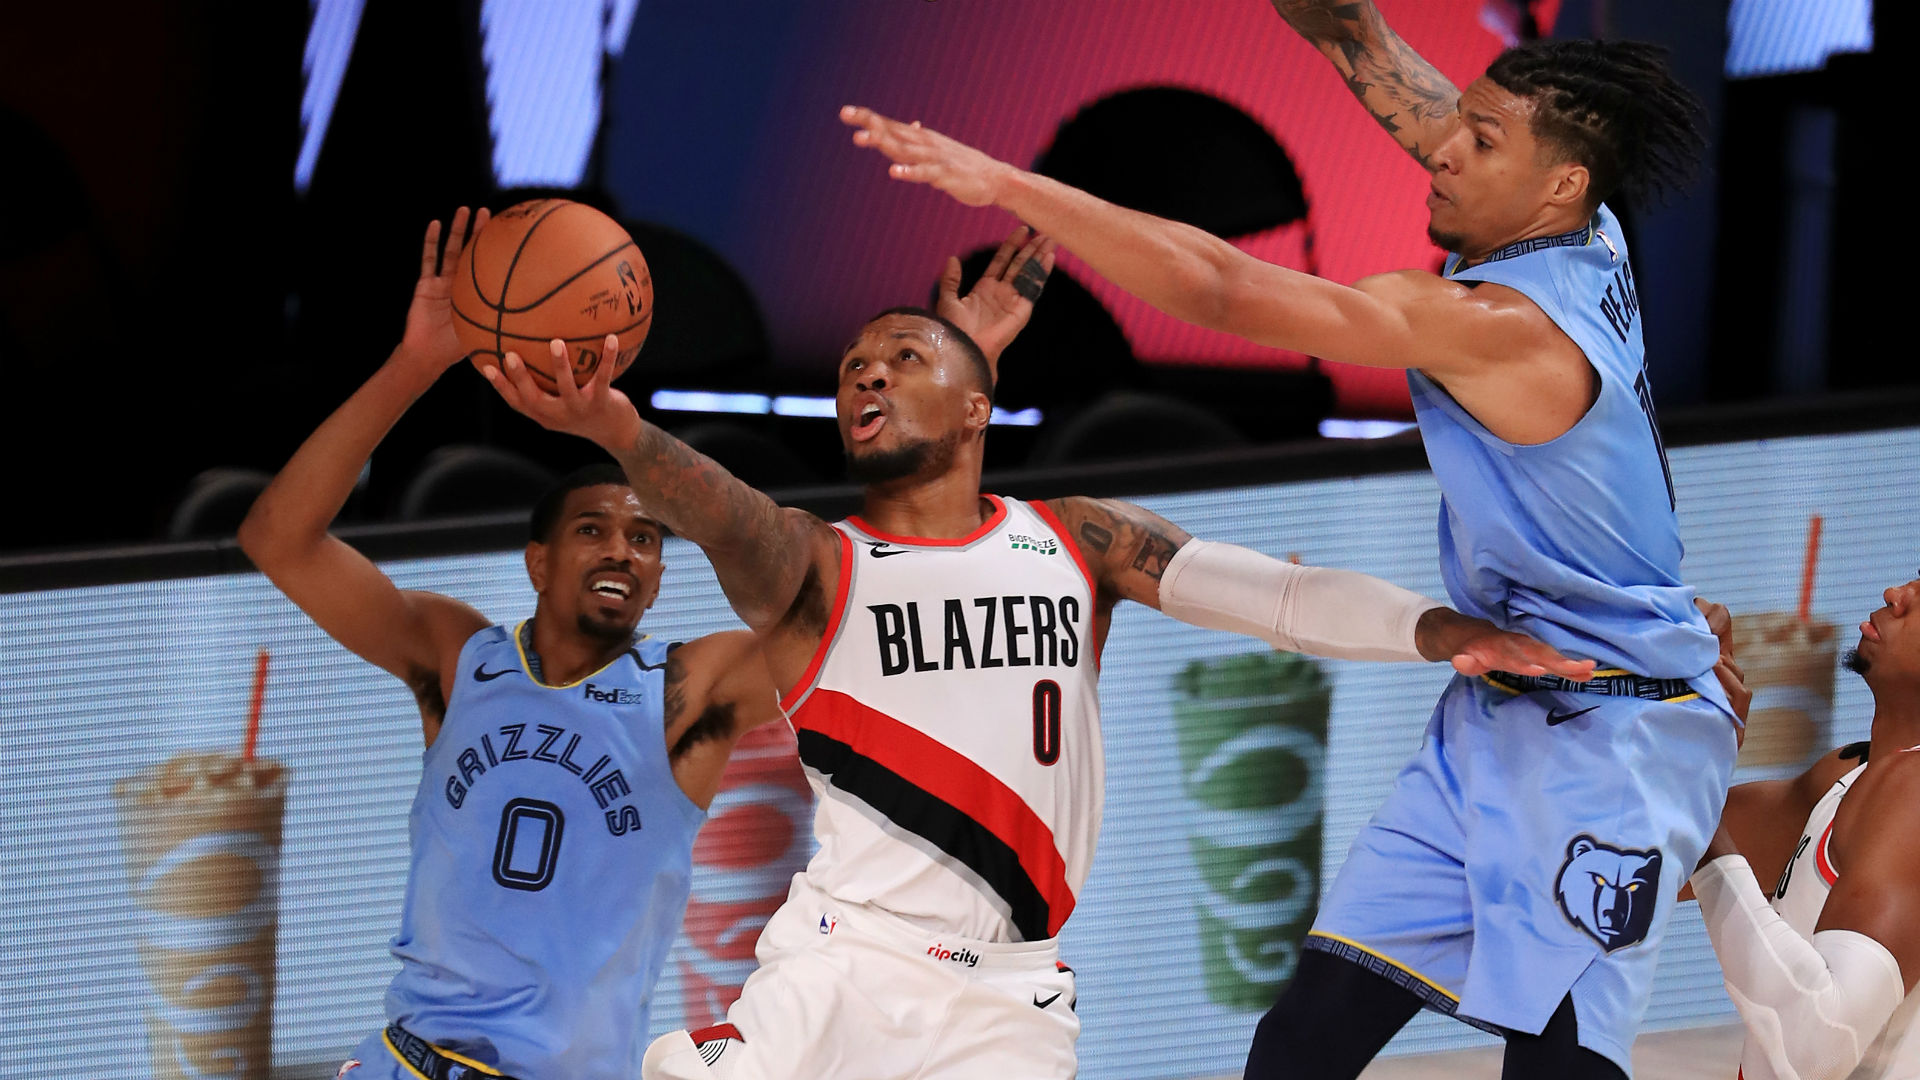 Trail Blazers Vs Grizzlies Score Highlights Portland Holds Off Memphis Advances To First Round Sporting News